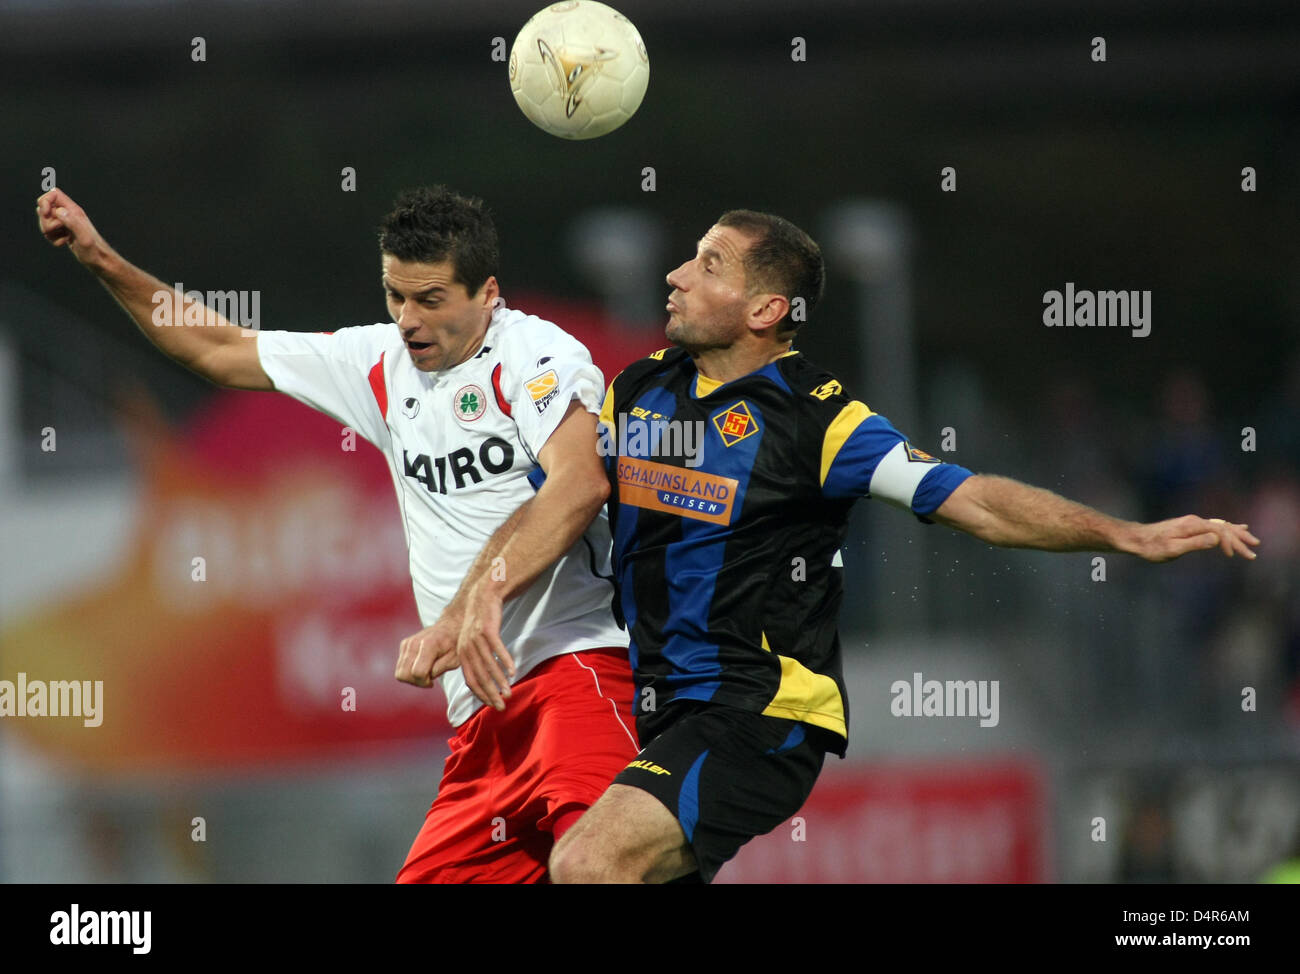 Koblenz?s Shefqi Kuqi (R) and Oberhausen?s Marinko Miletic (L) rise for a header during the German Bundesliga 2nd - Stock Image